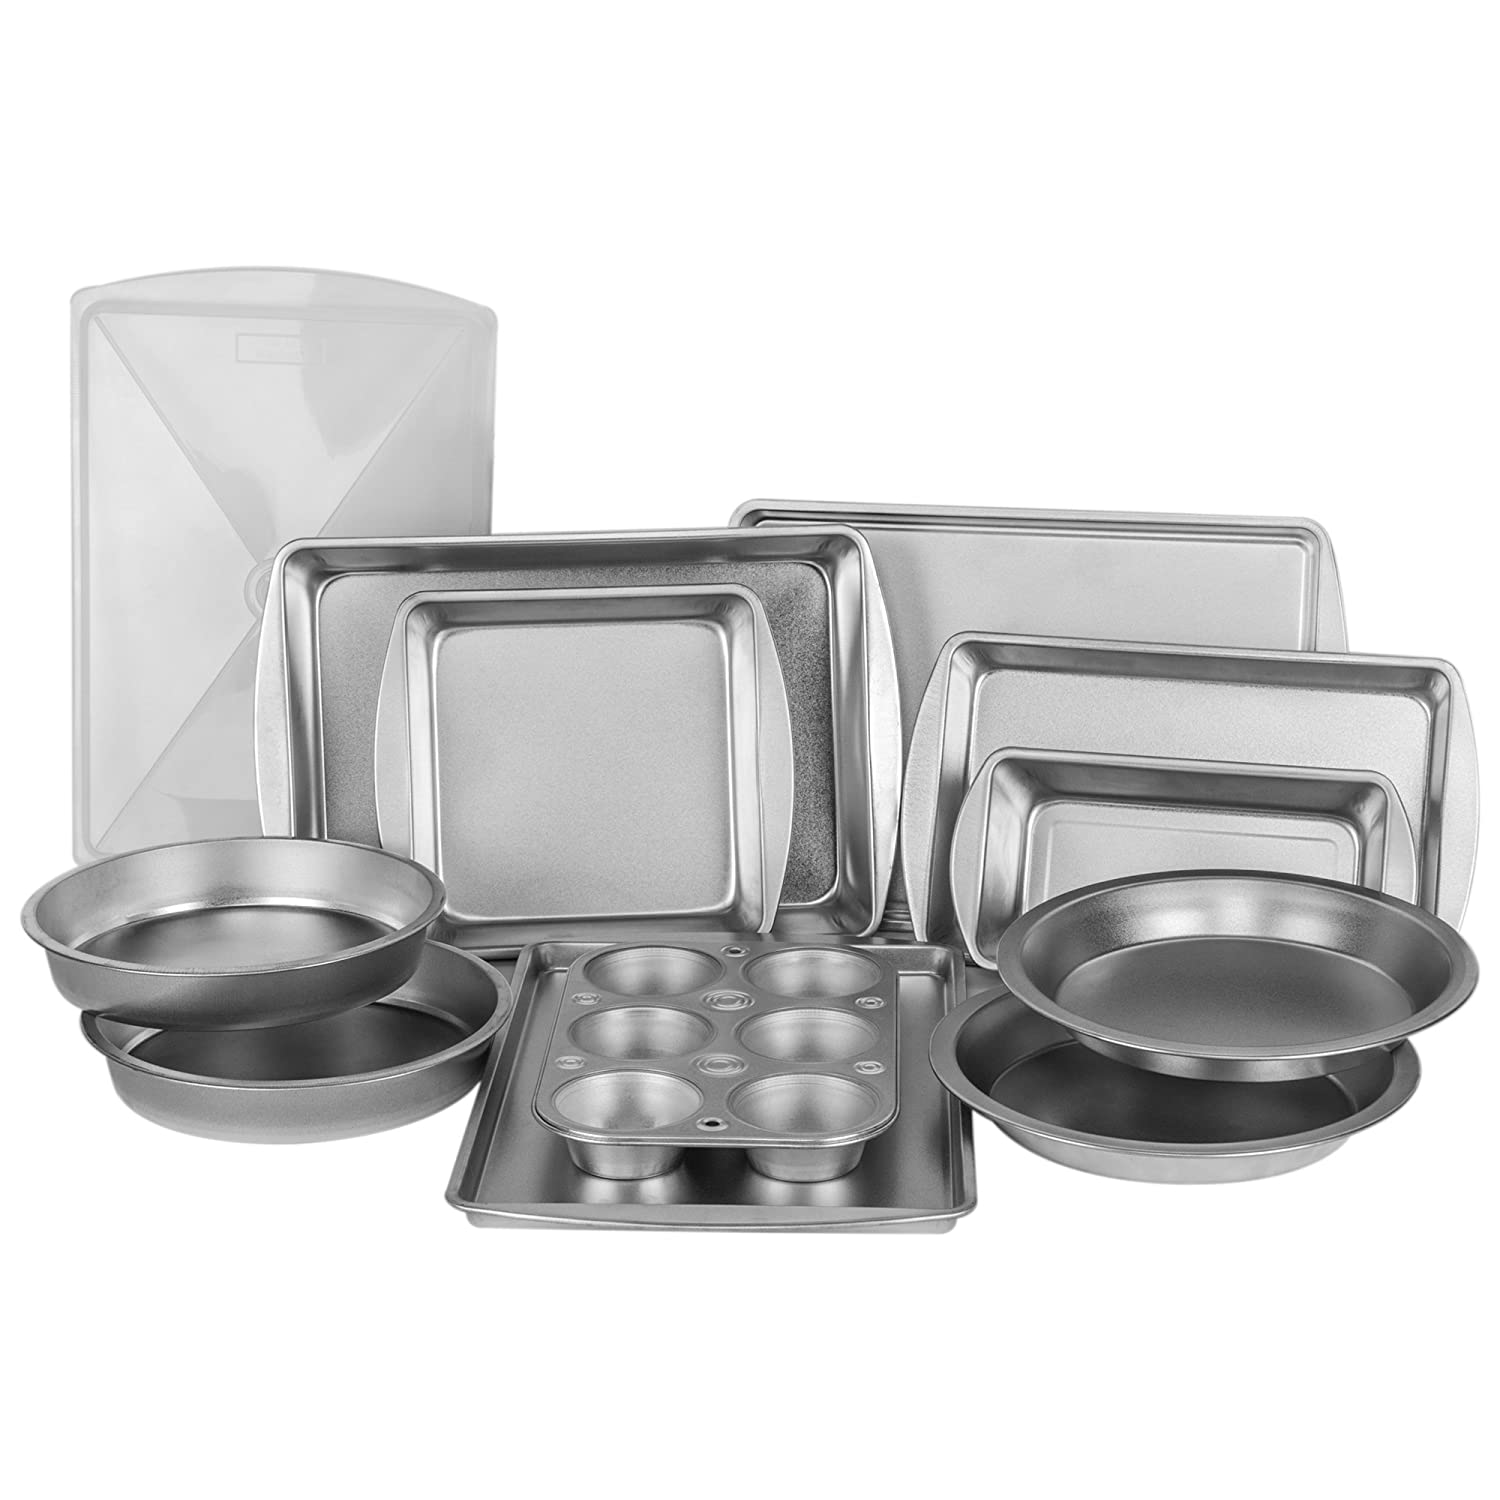 EZ Baker Uncoated, Durable Steel Construction 12-Piece Bakeware Set - Natural Baking Surface that Heats Evenly for Perfect Baking Results, Set Includes all Necessary Pans